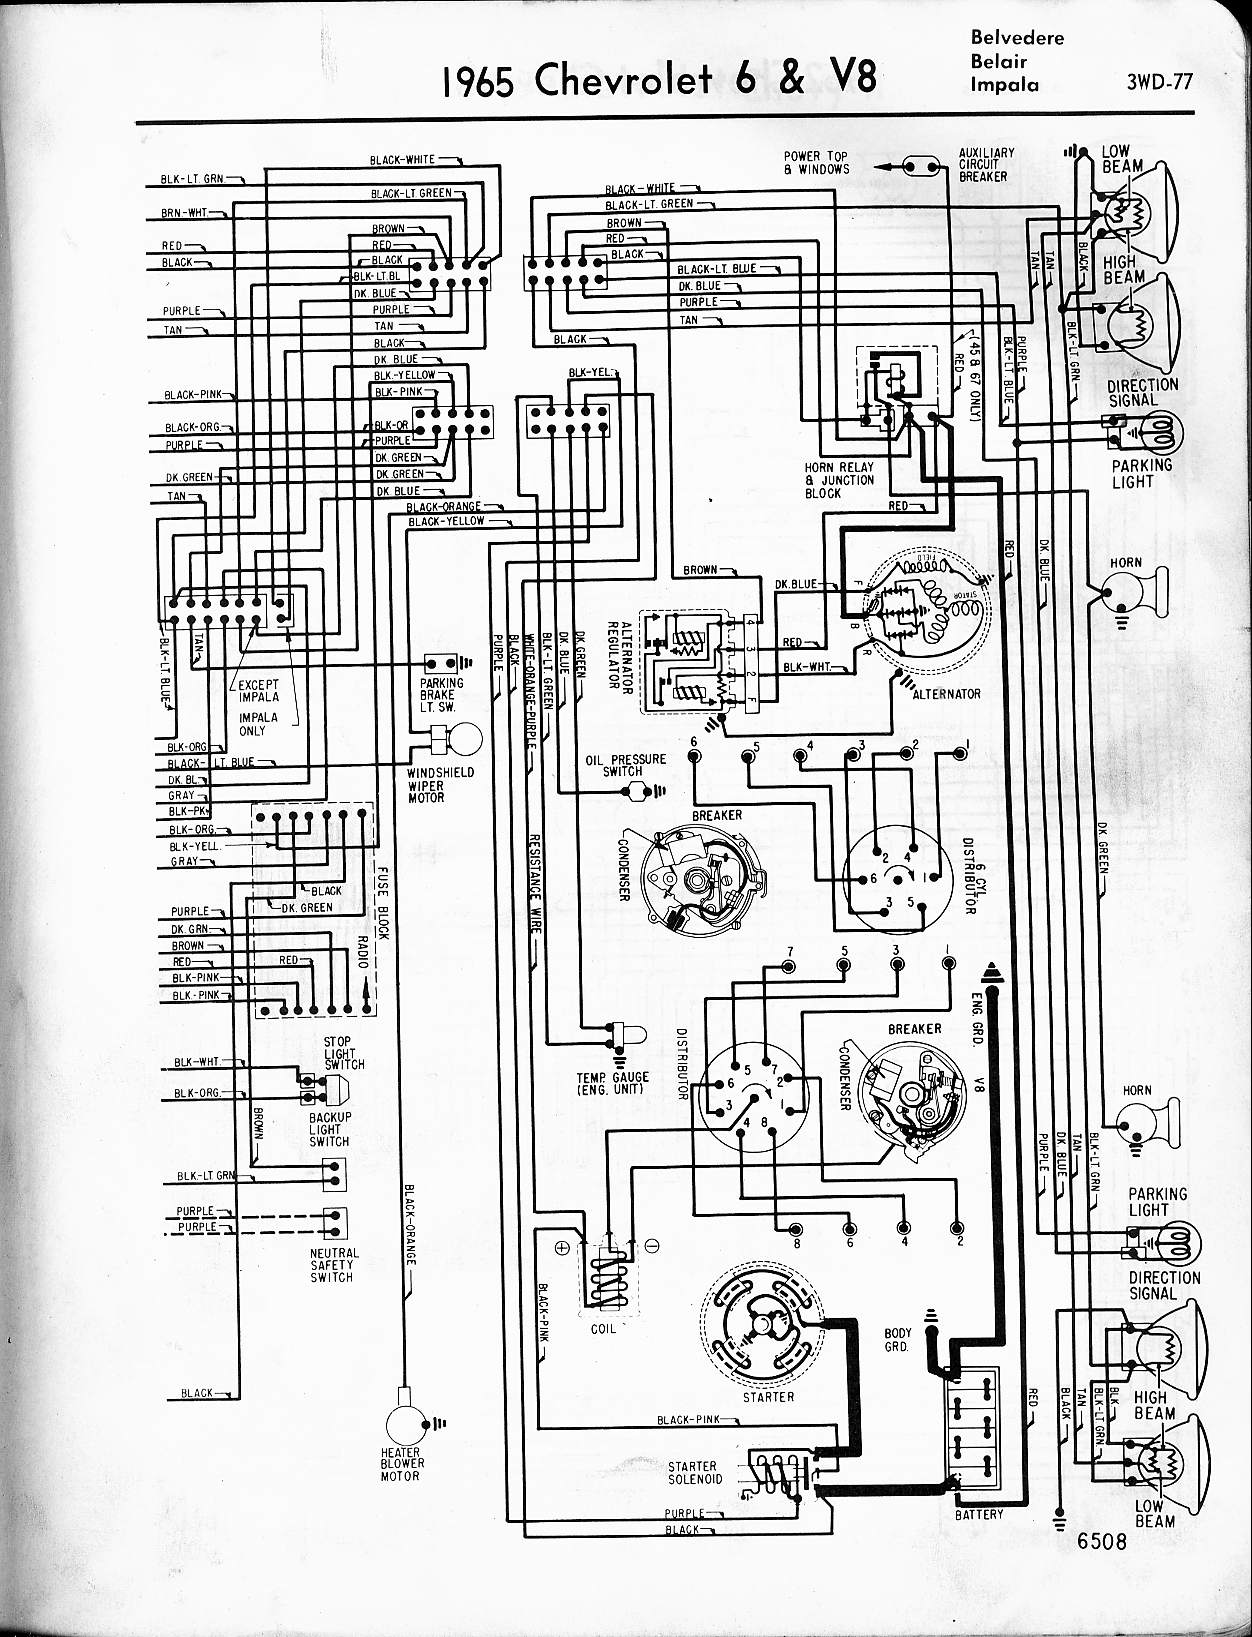 MWireChev65_3WD 077 1965 impala wiring harness 65 chevrolet impala \u2022 wiring diagrams 1964 impala wiring diagram for ignition at webbmarketing.co